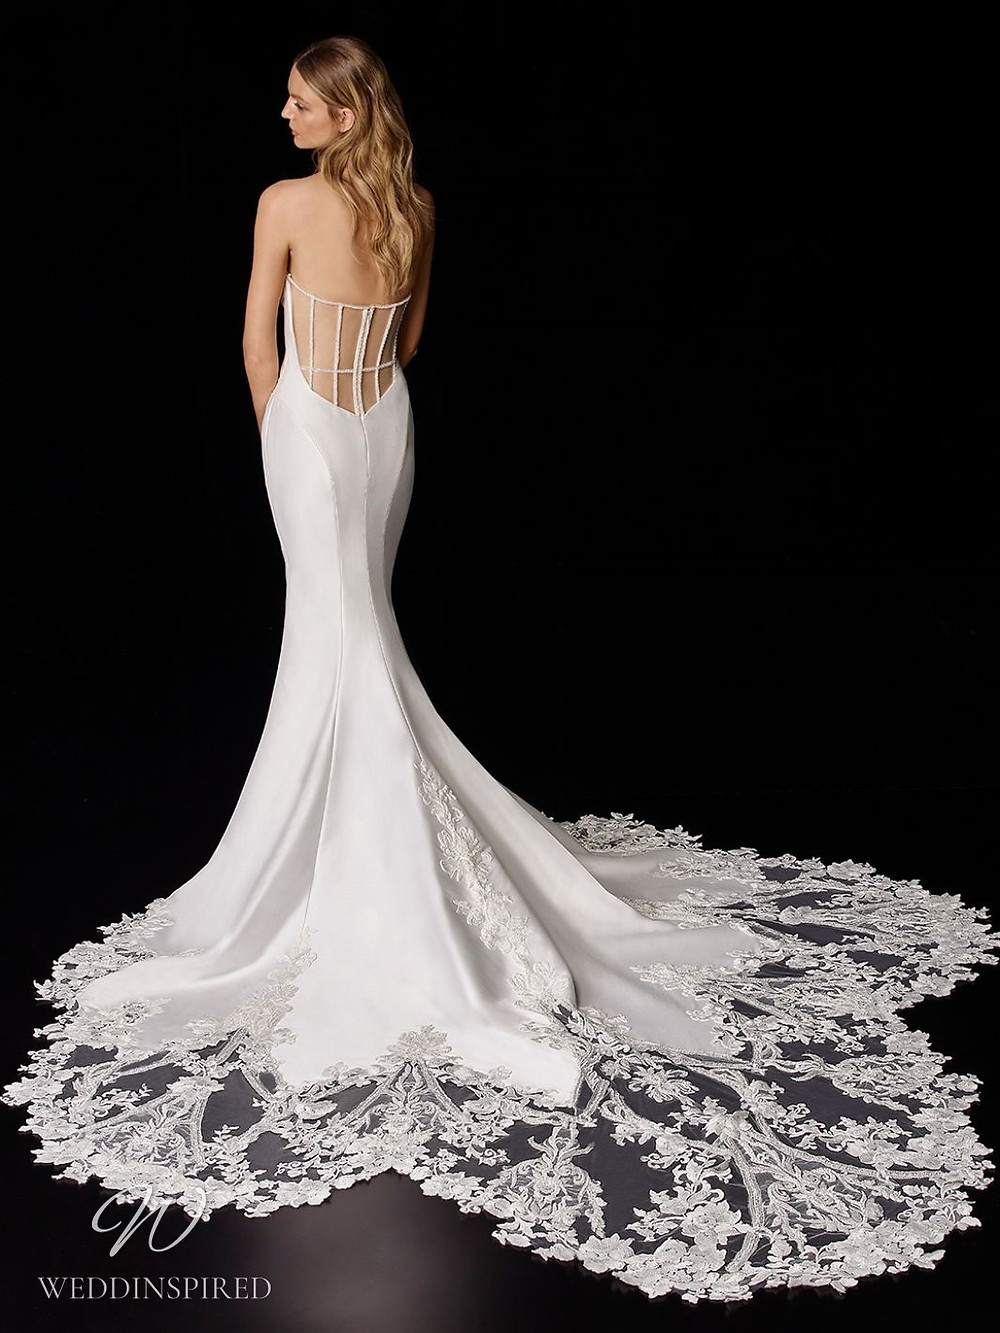 An Enzoani silk and lace mermaid wedding dress with a low back and a long lace illusion train